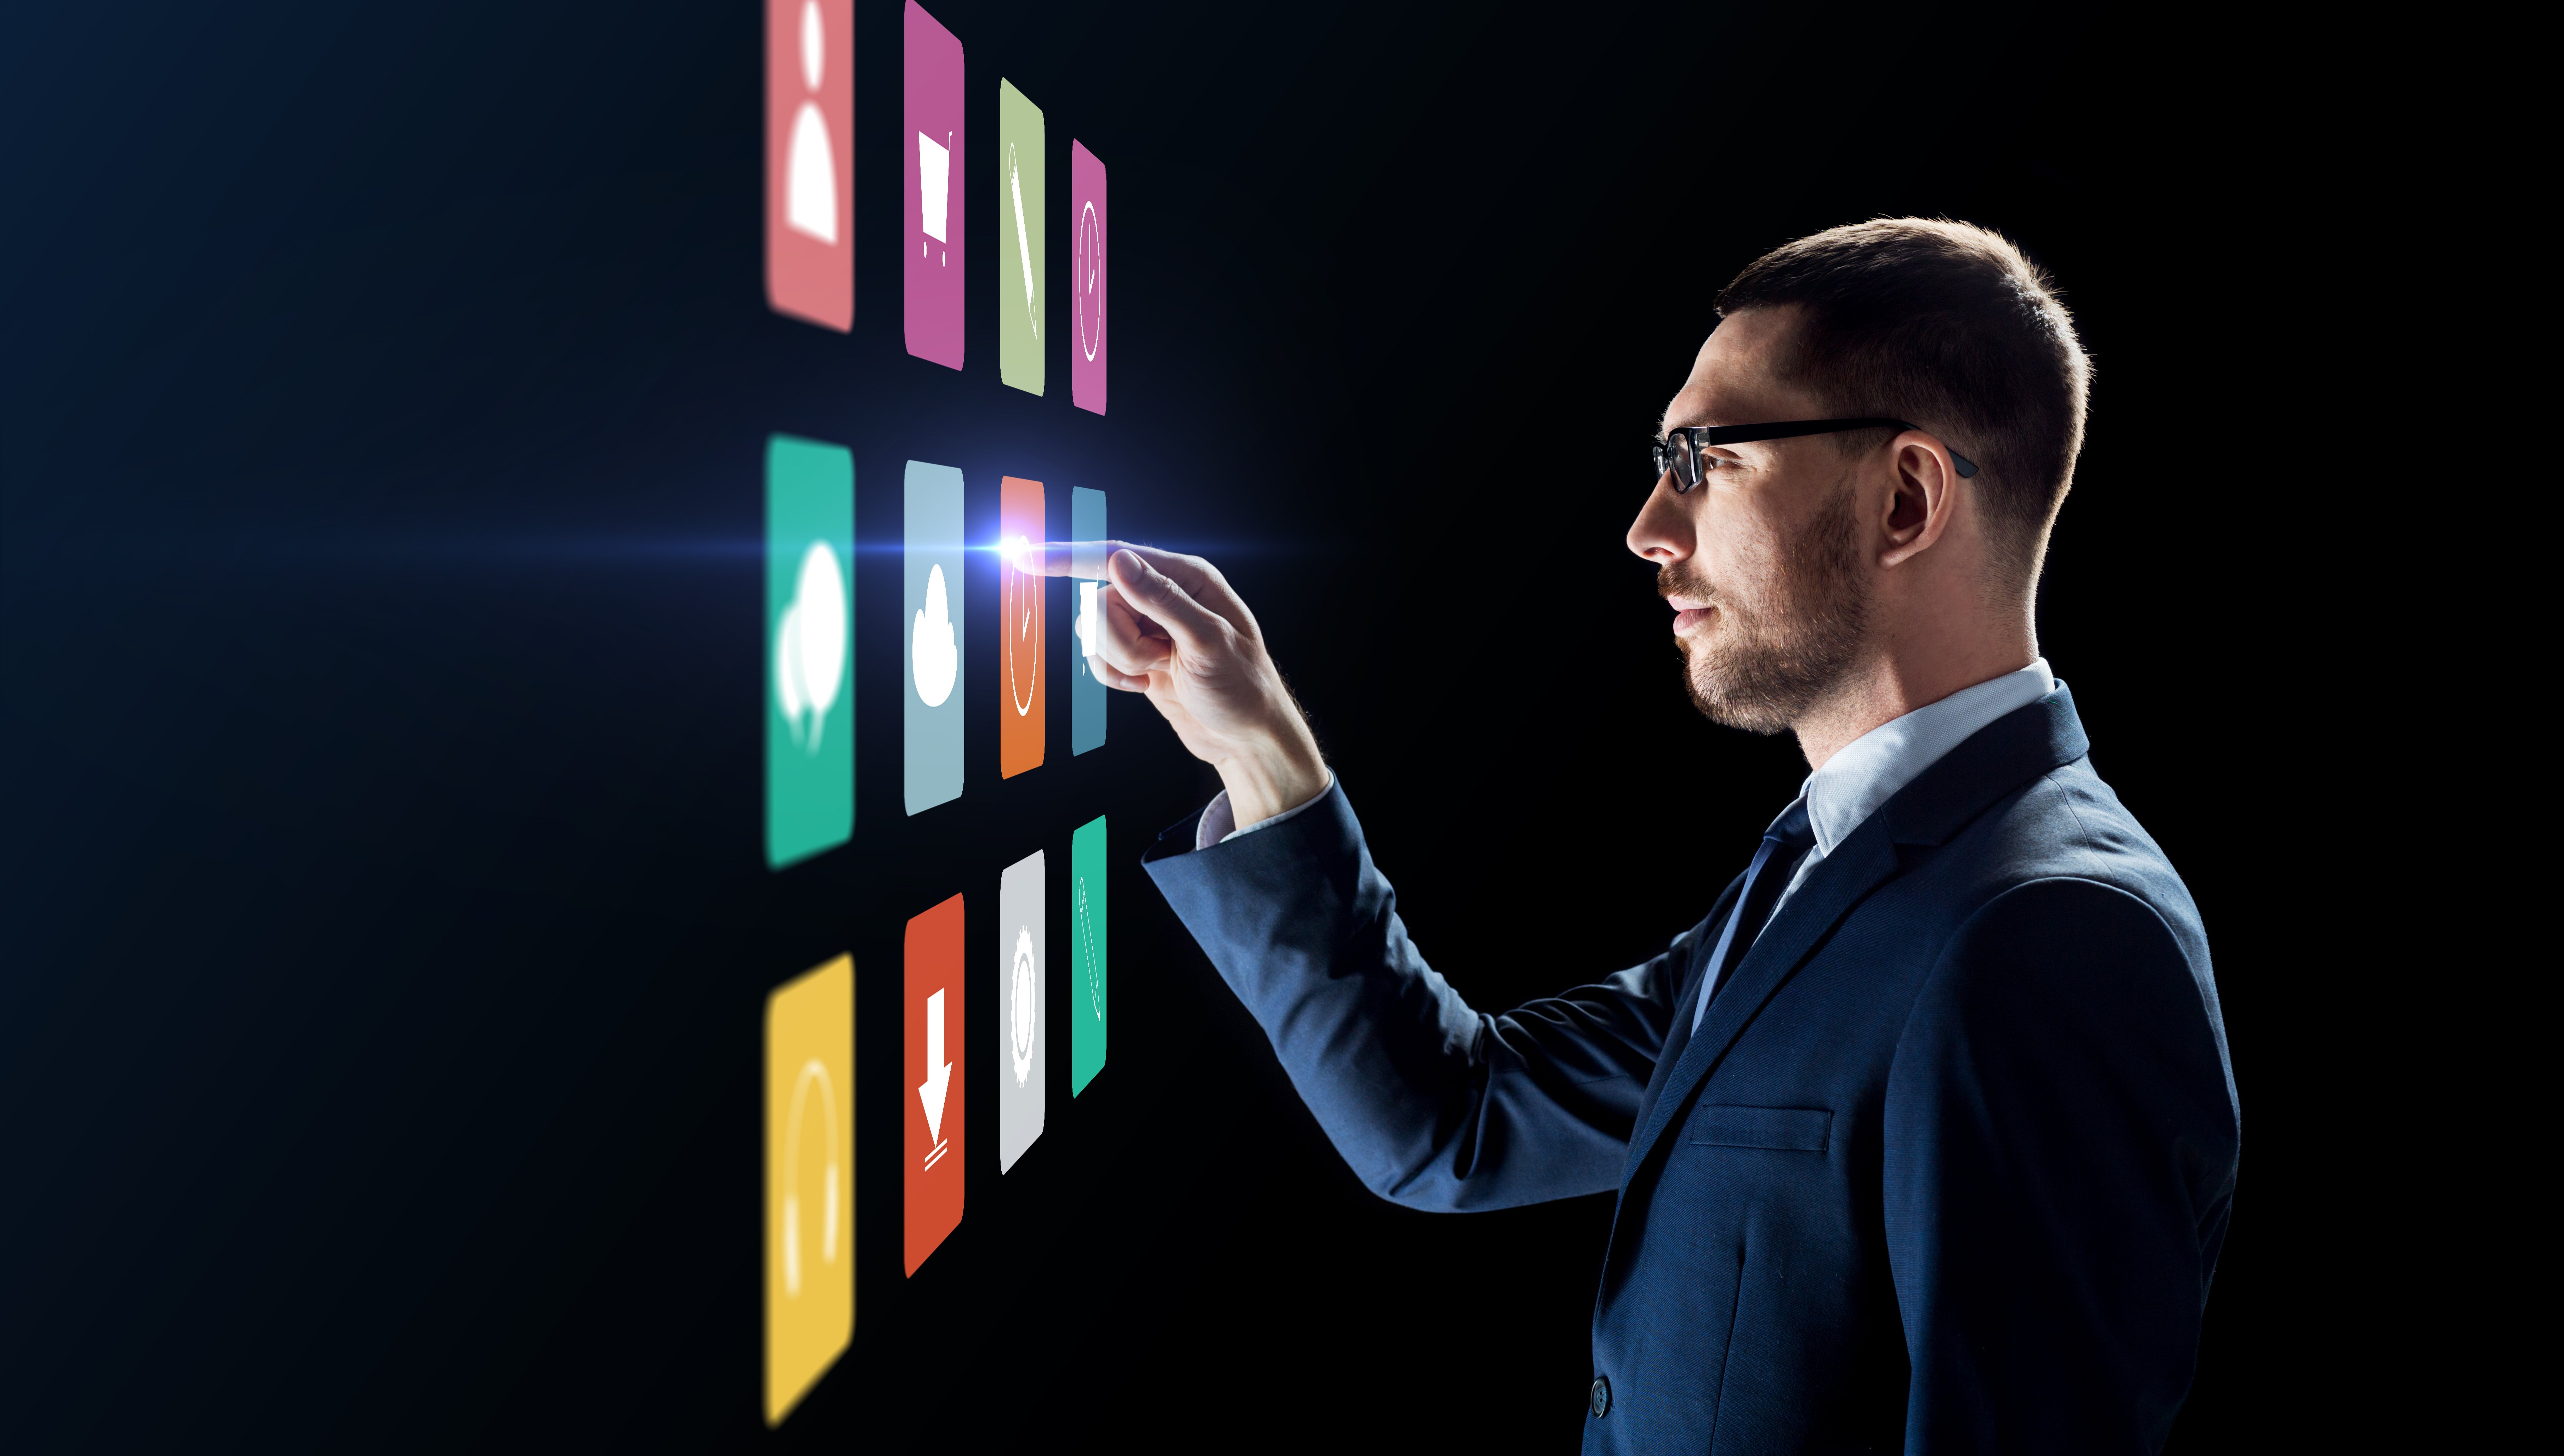 Digital Marketing Trends Paving the Path to 2020